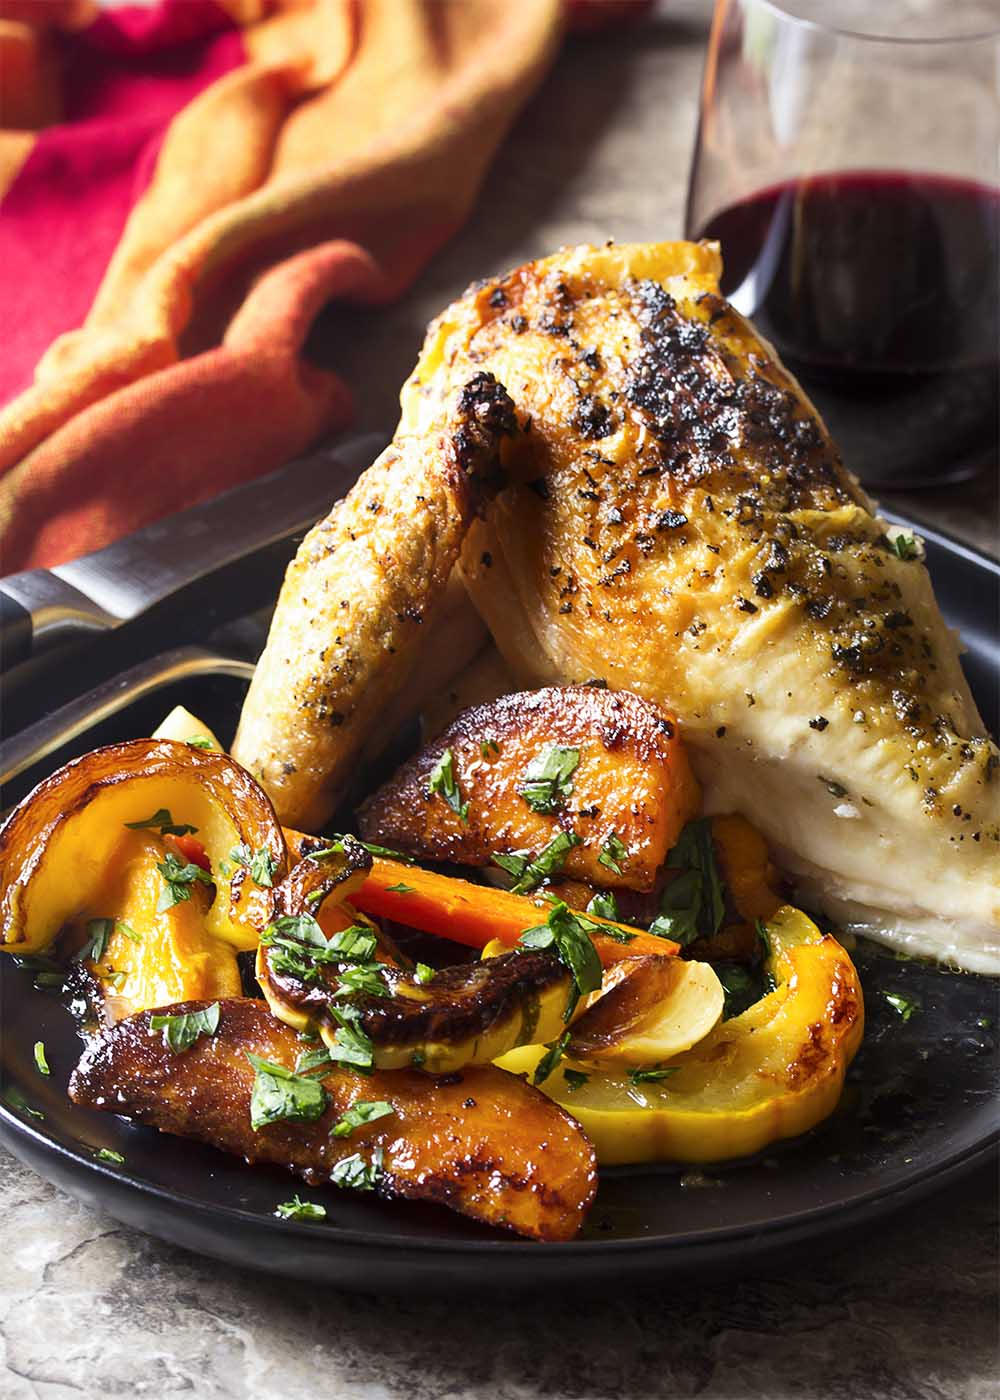 A portion of roasted chicken and root vegetables on a plate with utensils.